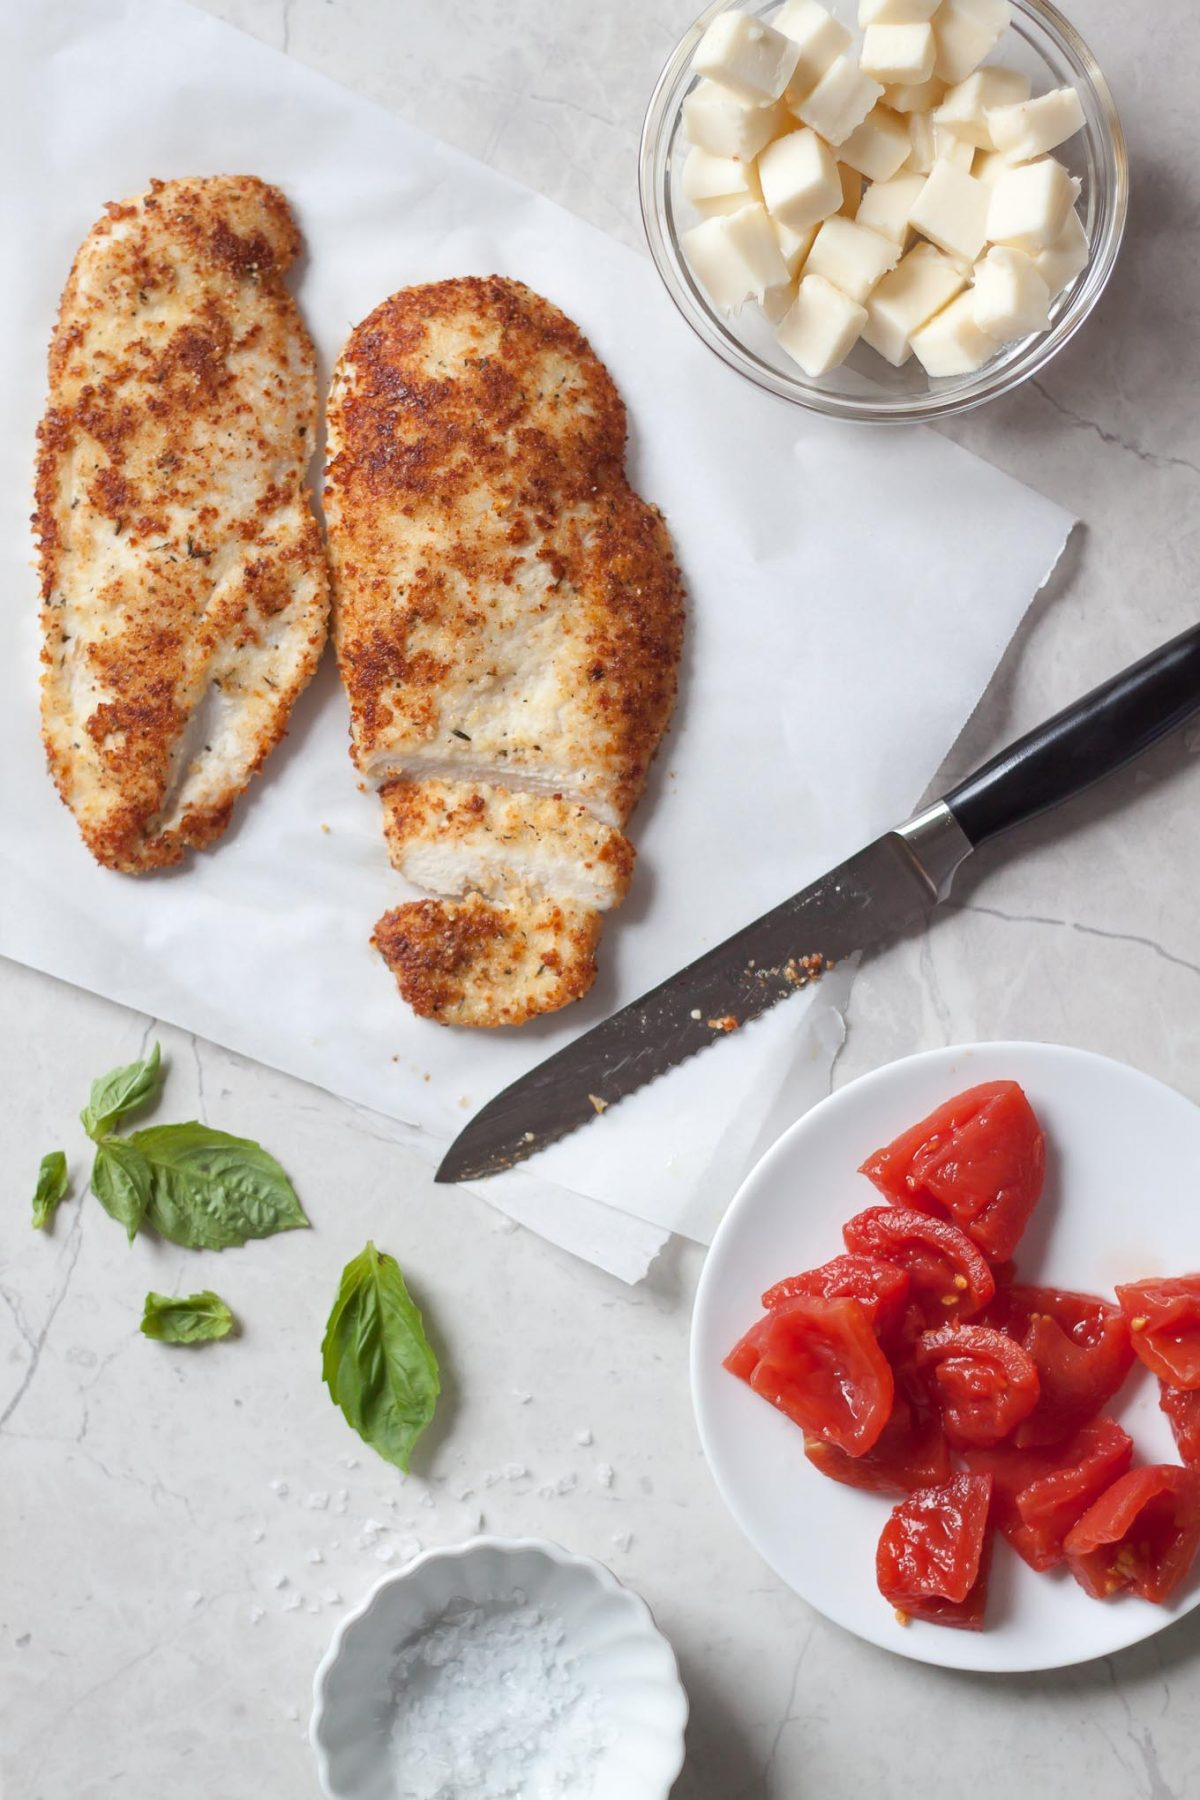 Parmesan Crusted Chicken Caprese Salad Recipe   A Spruced Up Caprese Salad  Made With Arugula,